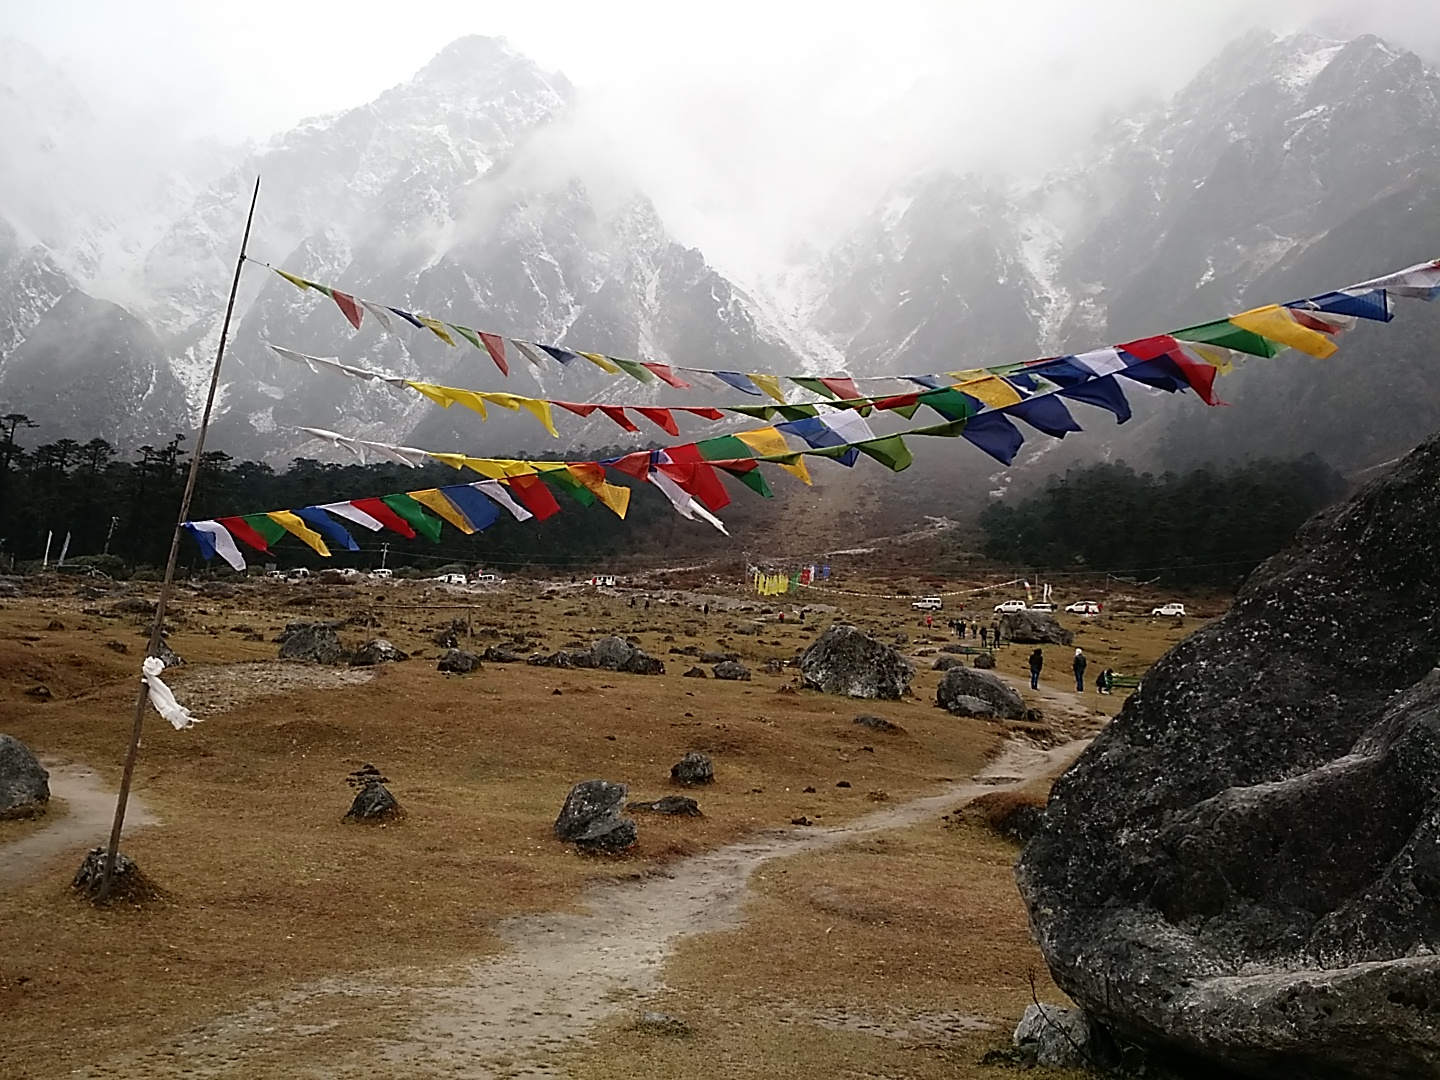 Postcard from Yumthang Valley in Sikkim